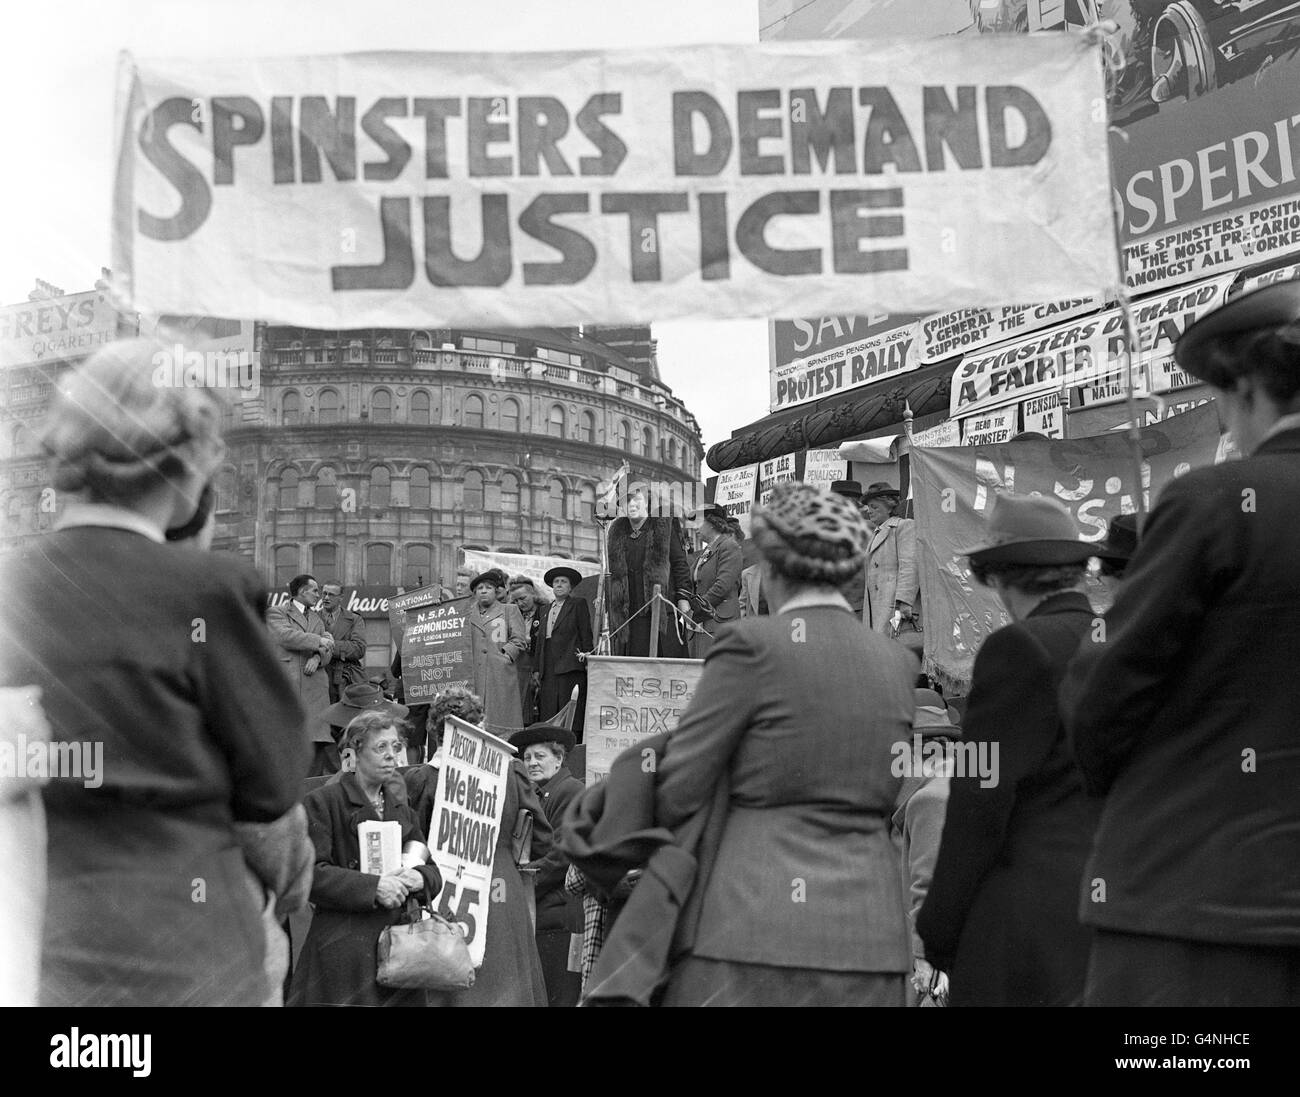 Politics - Protests & Demonstrations - Spinsters Rally - London - Stock Image